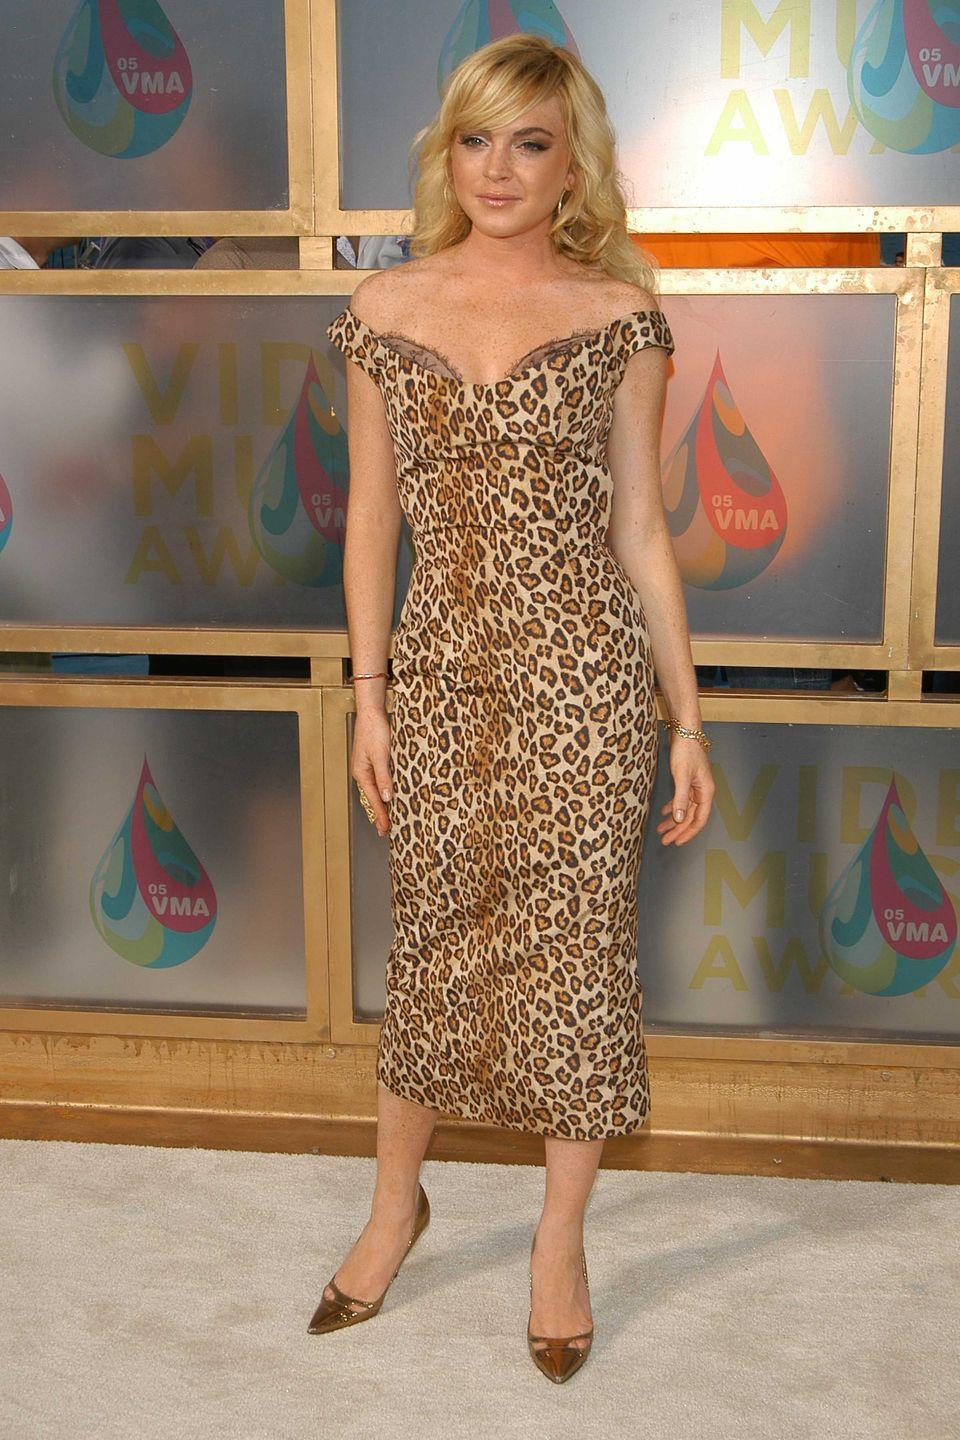 <p>Lindsay Lohan went all in on leopard print in this off-the-shoulder midi dress, which she wore in 2005.</p>